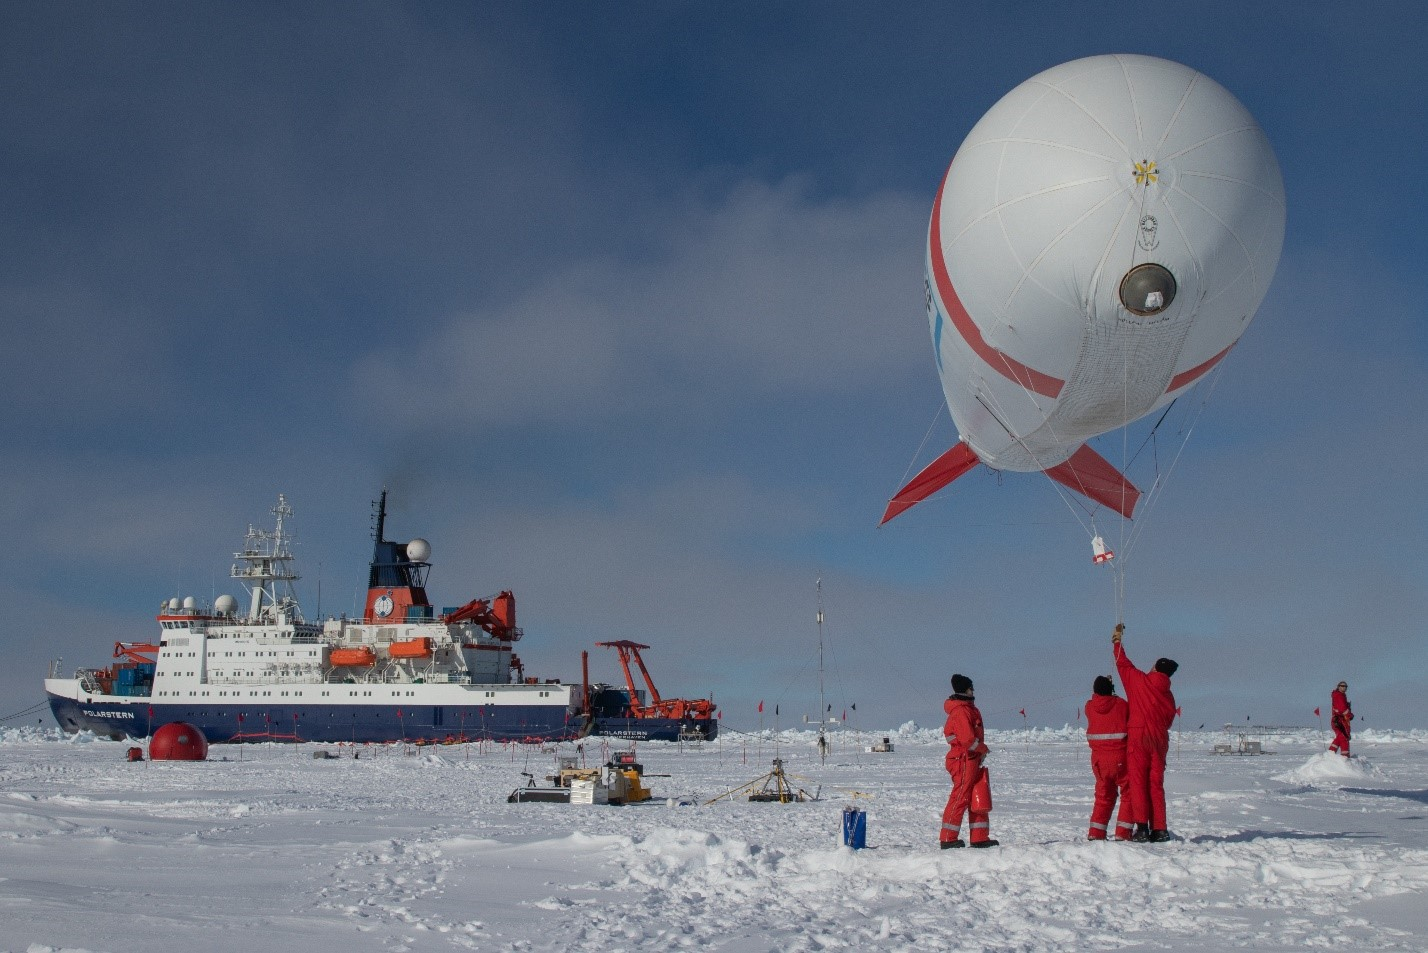 Polarstern research icebreaker on a mission